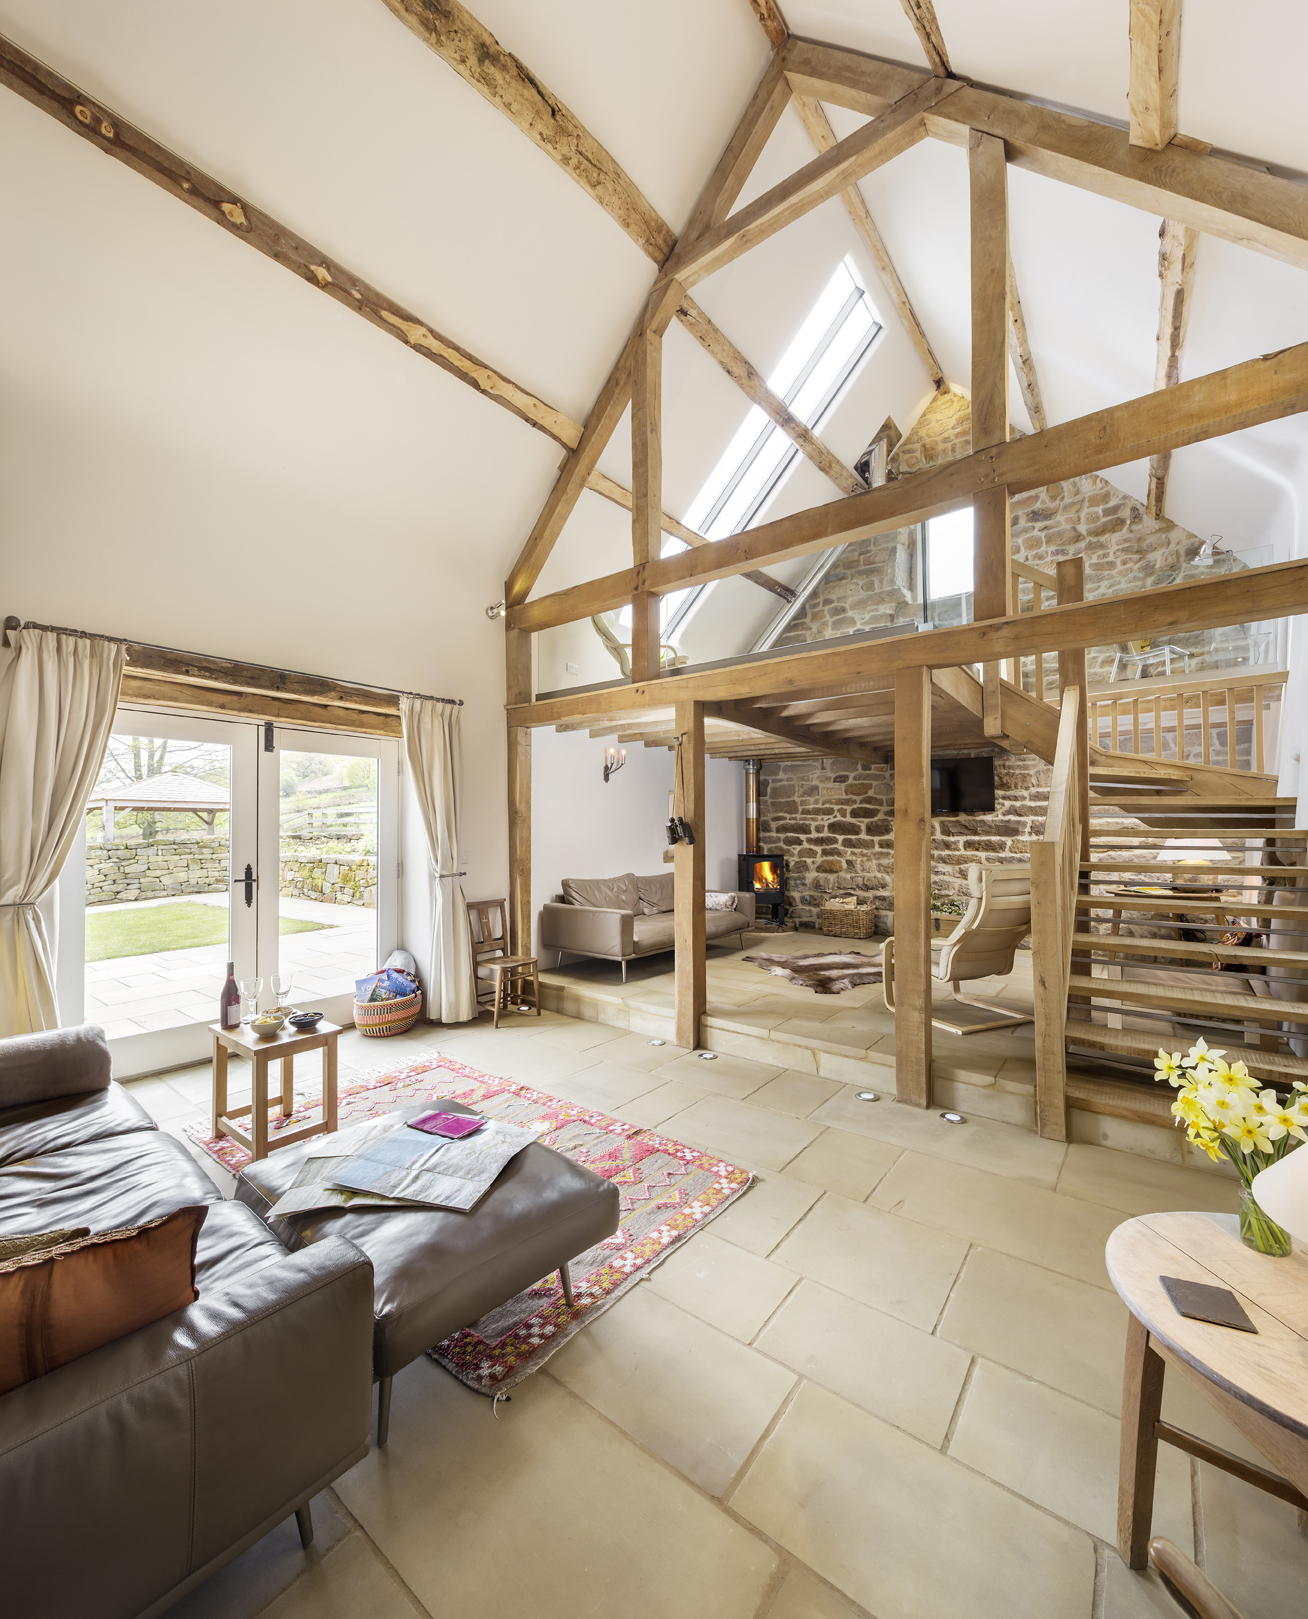 Lovely big light and airy south facing sitting room